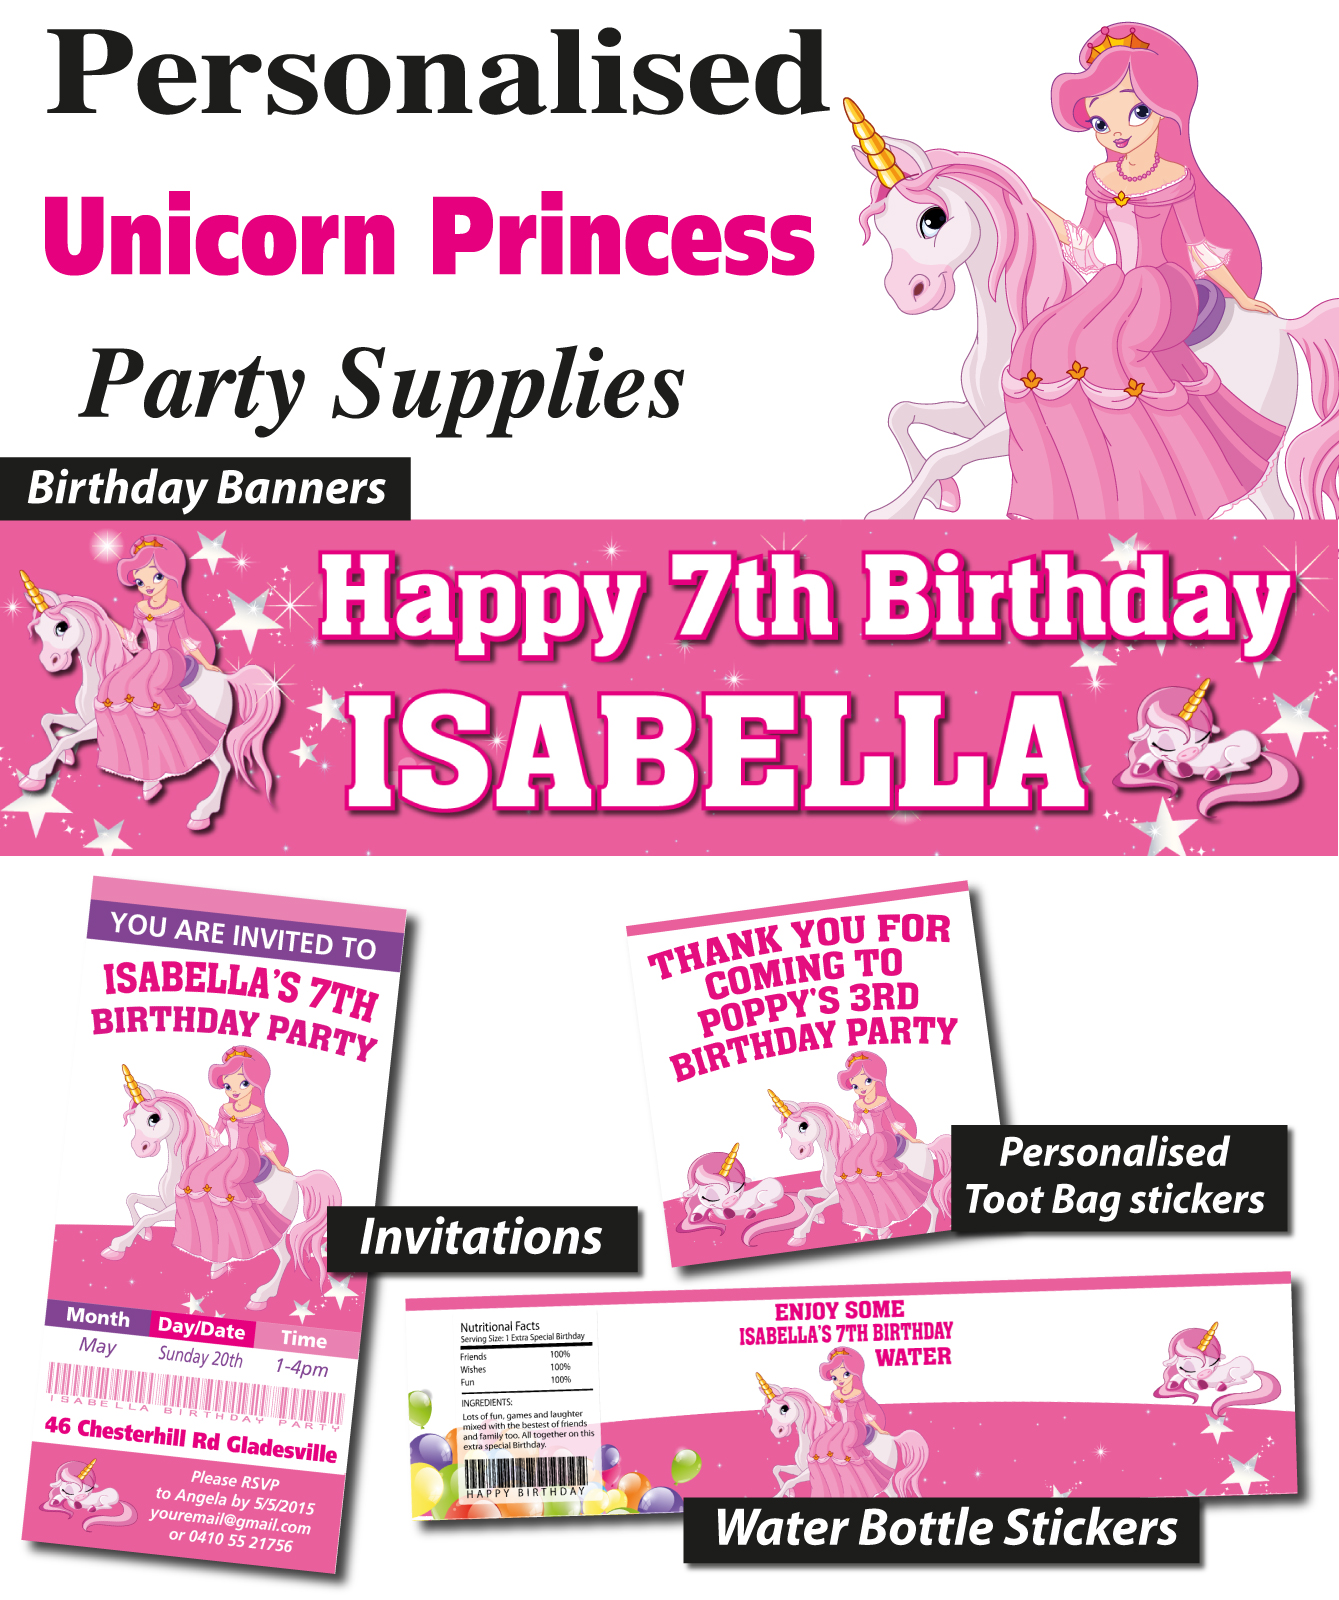 unicorn-princess-ebay.jpg